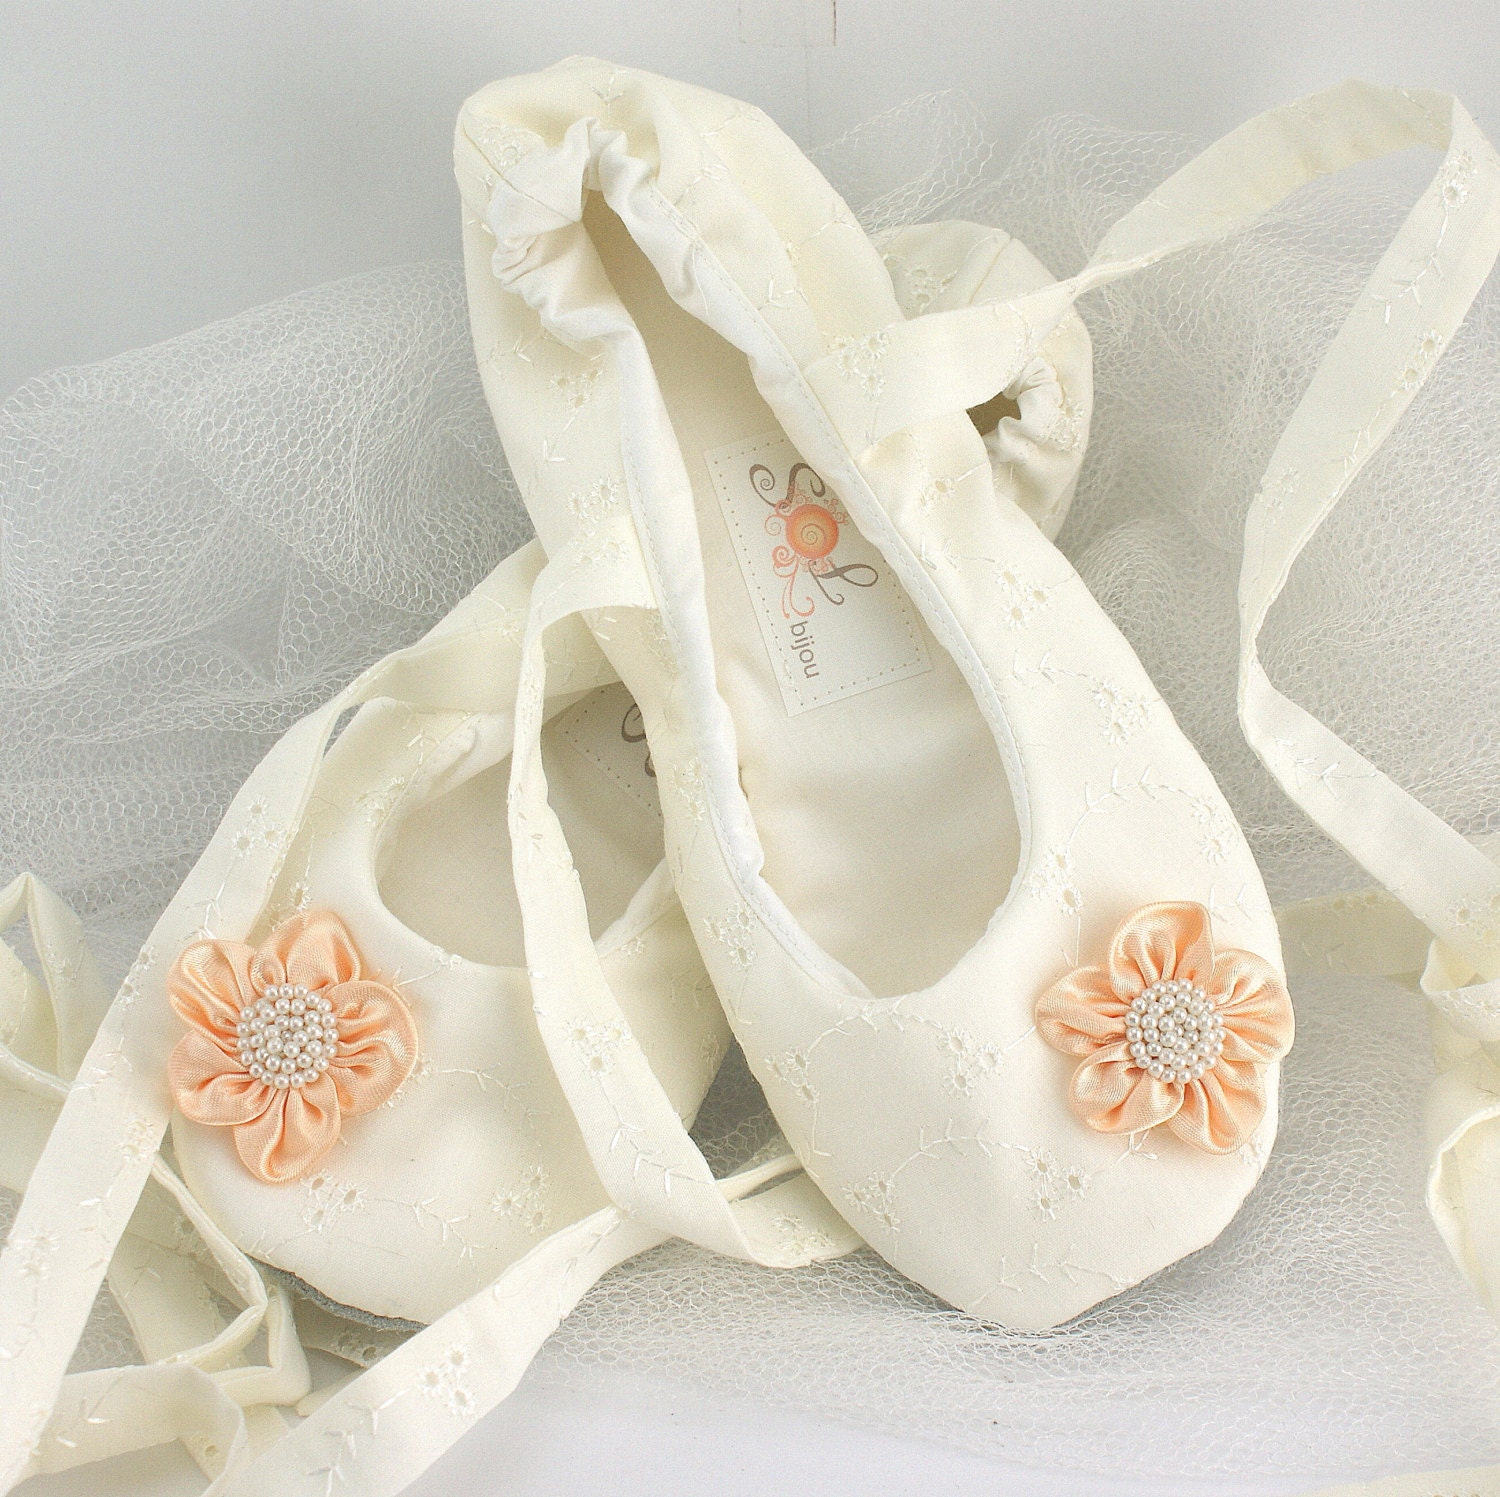 Find great deals on eBay for ivory ballet slippers. Shop with confidence.